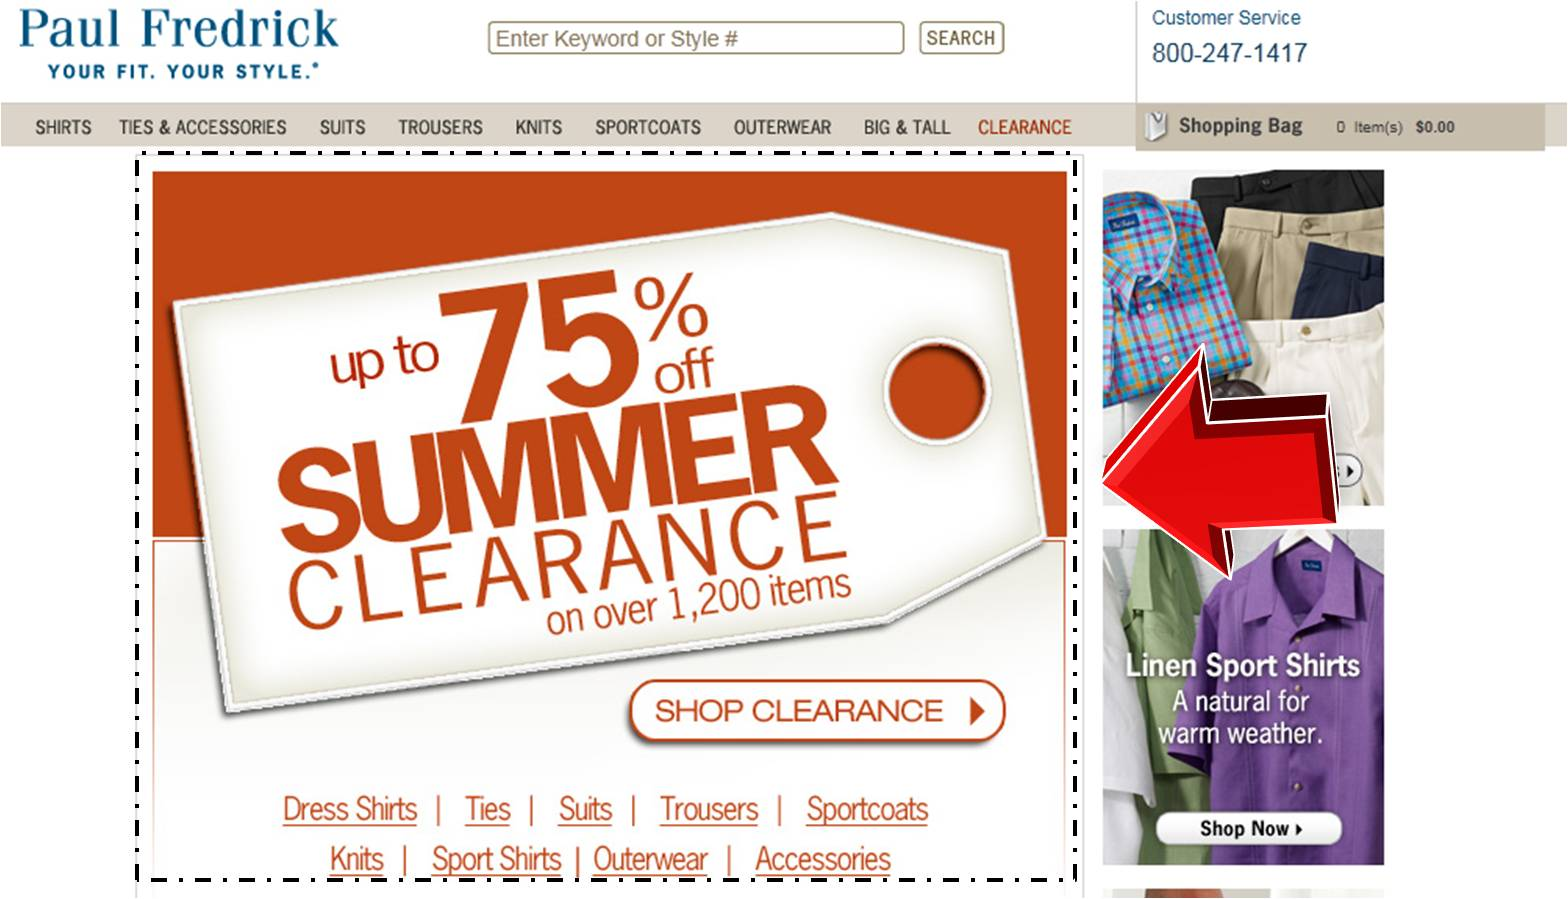 paul fredrick july promotion 75 off summer clearance coupon code. Black Bedroom Furniture Sets. Home Design Ideas